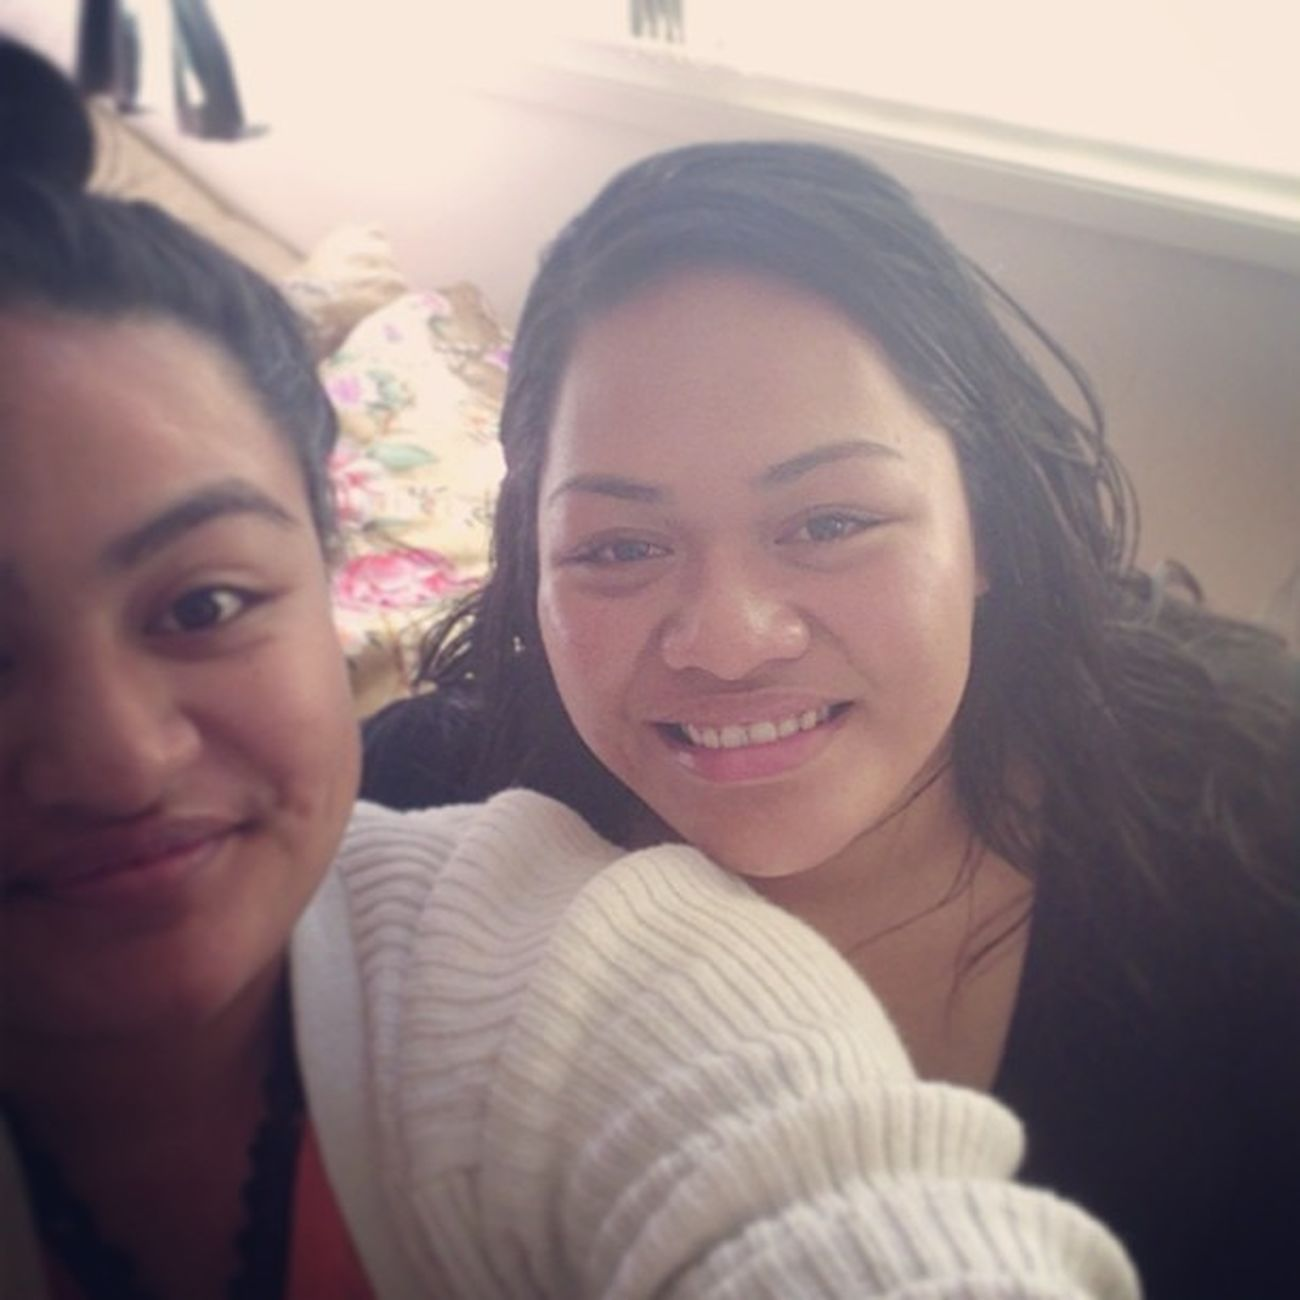 Taking selfies with my older sis ????luv ya heaps Always being there for me and the fams also being a great older sis Loveyoutothemoonandback Sisterlylove @gene_tee ♥♥♥♥????????????????????????